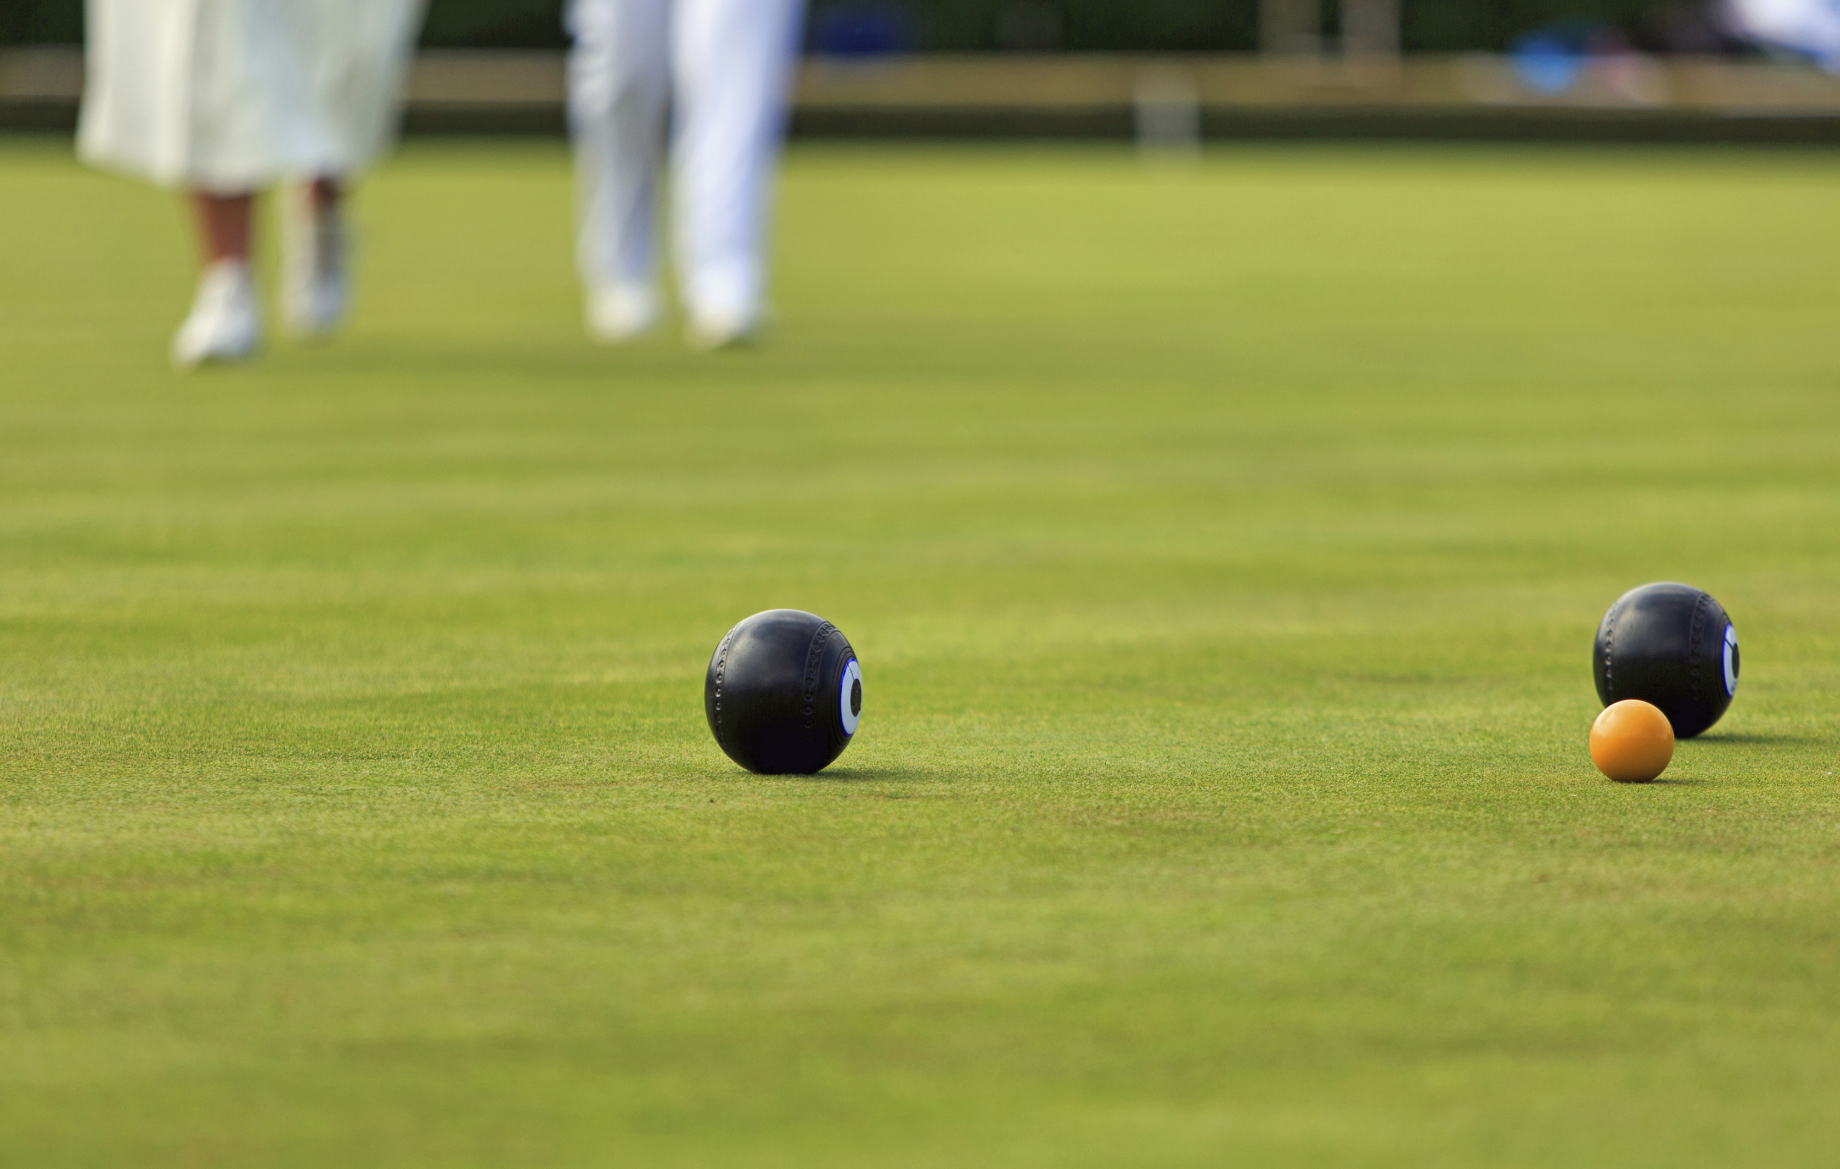 Bowler's life saved thanks to swift actions of fellow player